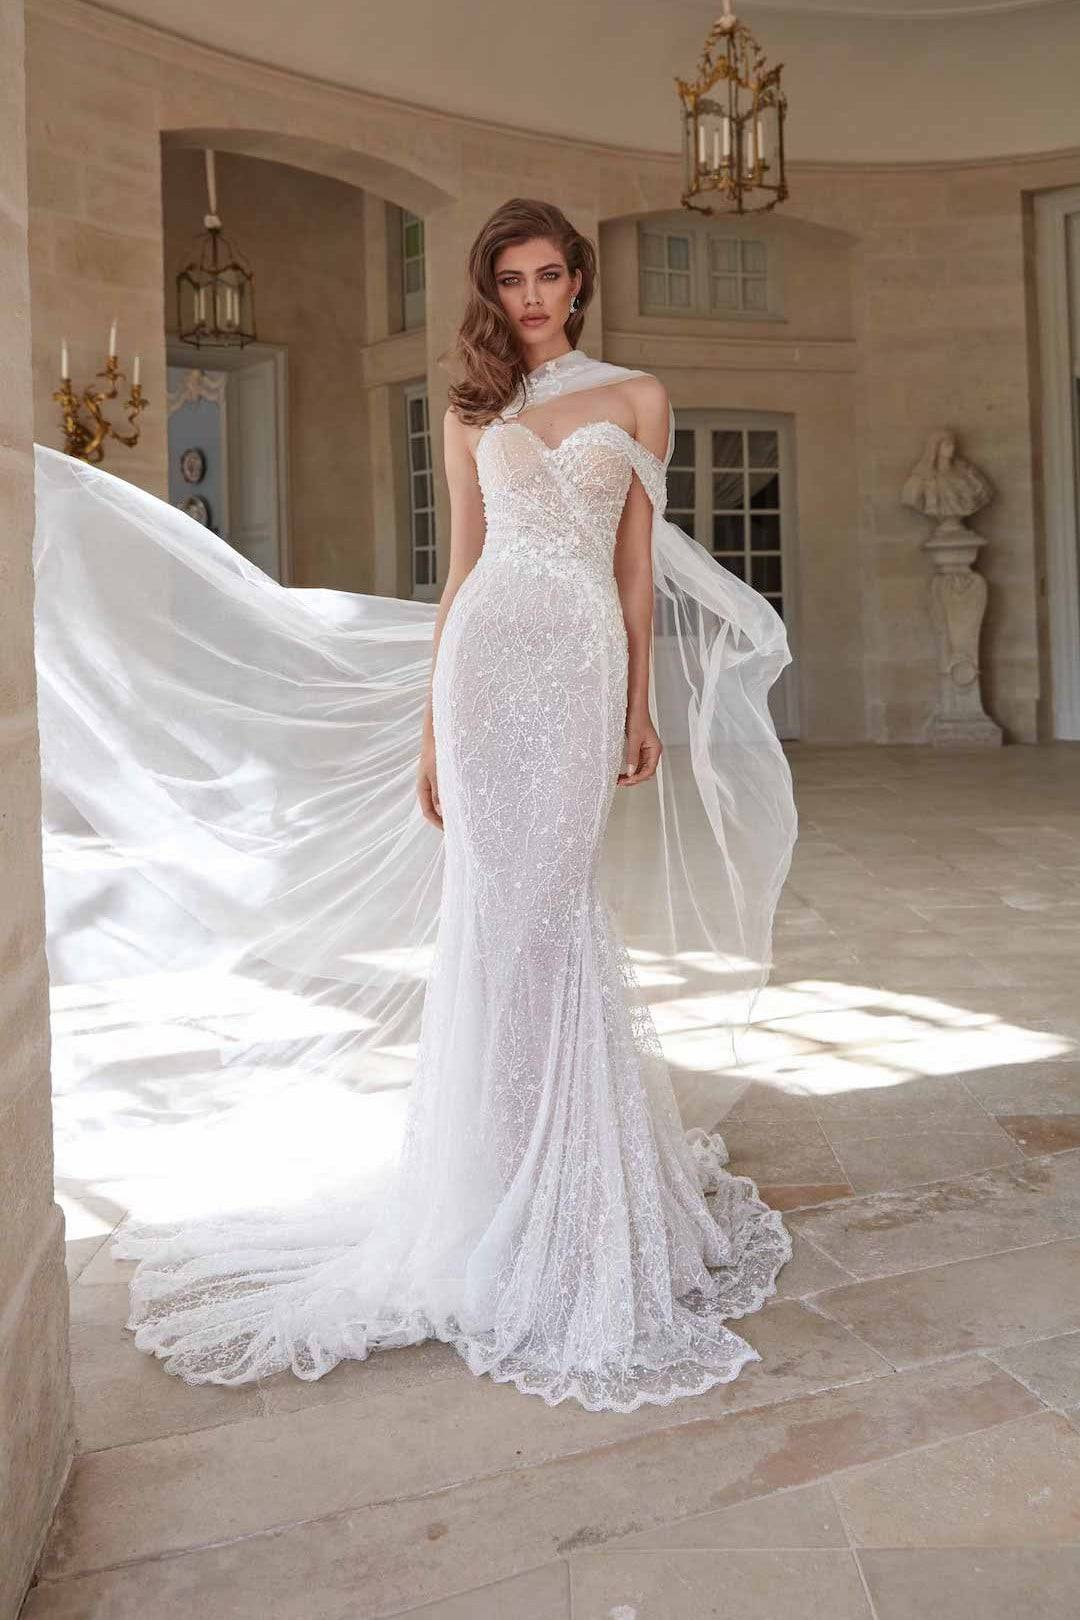 Luxury wedding dresses - Simone-Front-1-1080x1620